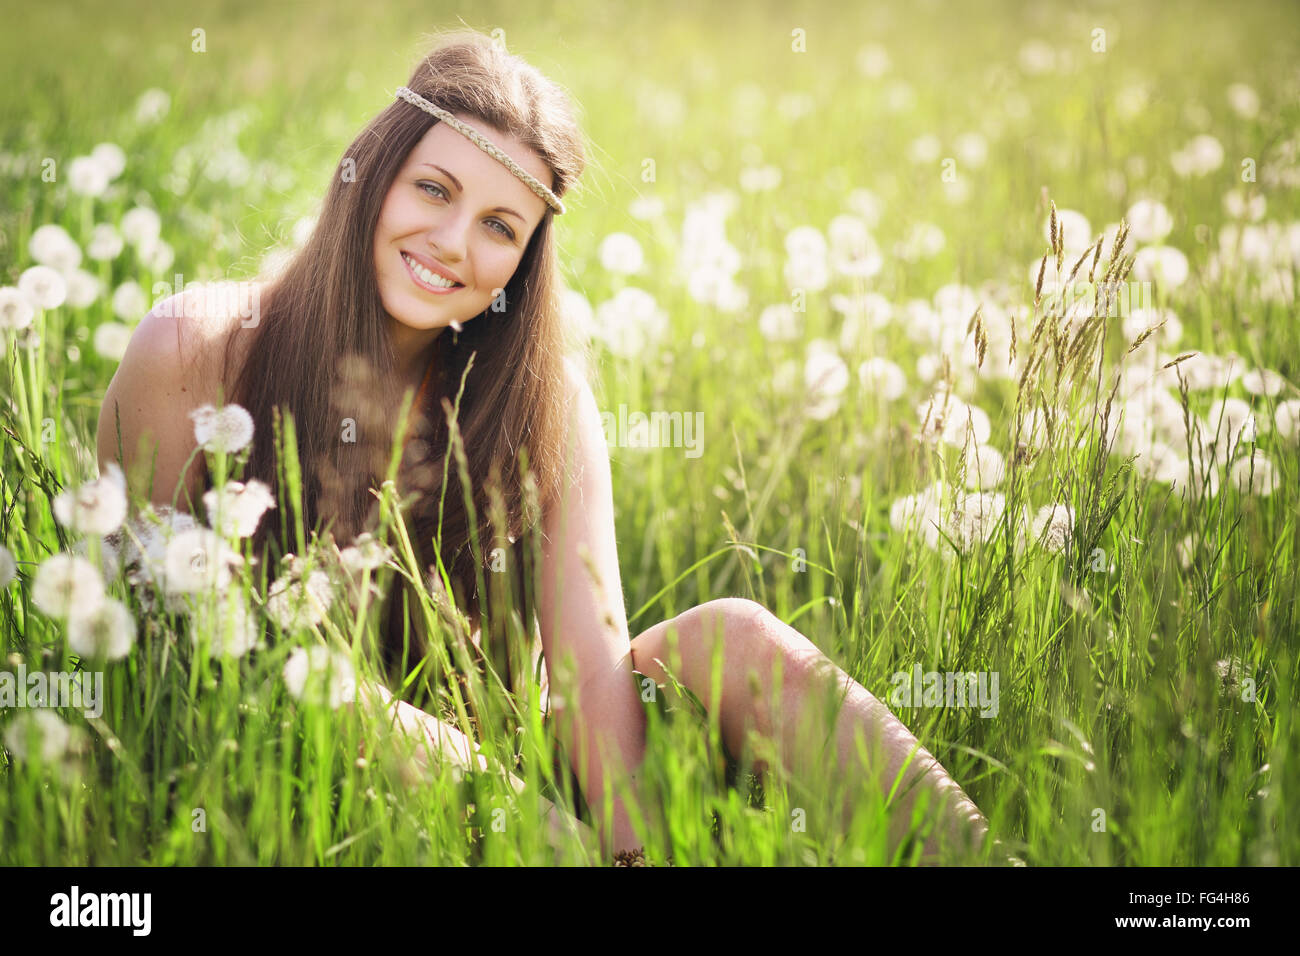 Beautiful young woman smiling in a flowered meadow . Nature harmony and serenity - Stock Image